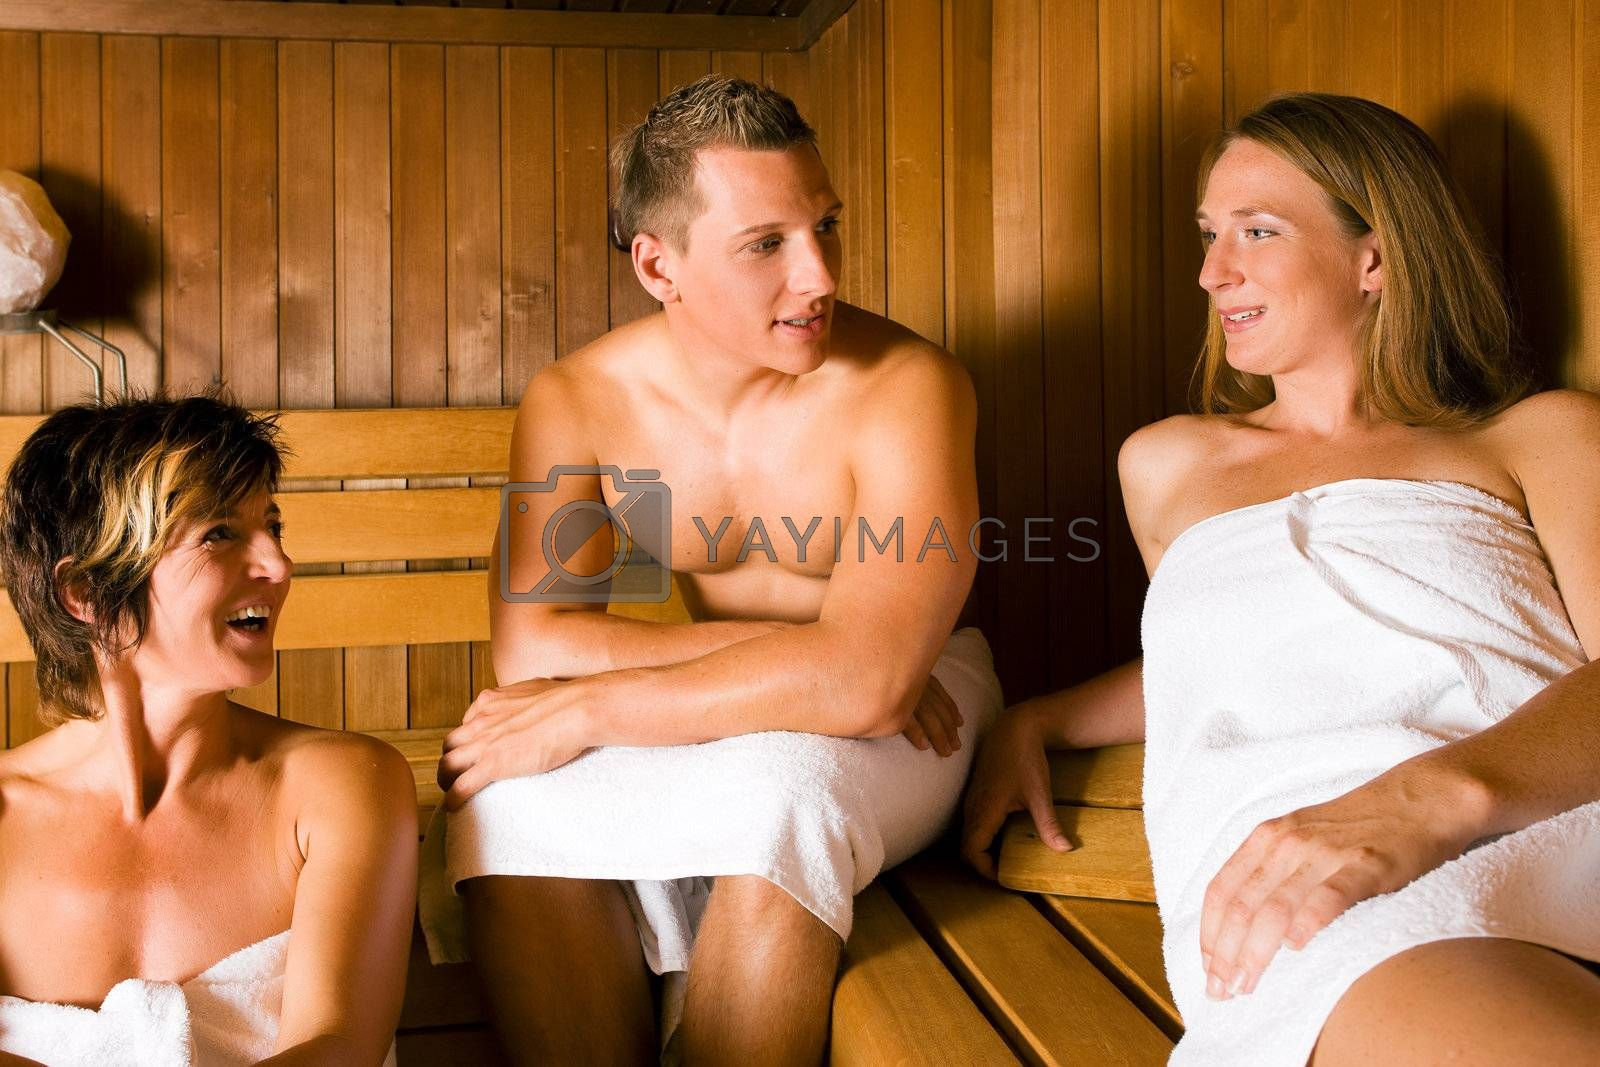 Three people (one male, two female) relaxing in a sauna, doing a lot for their health but also having fun with it